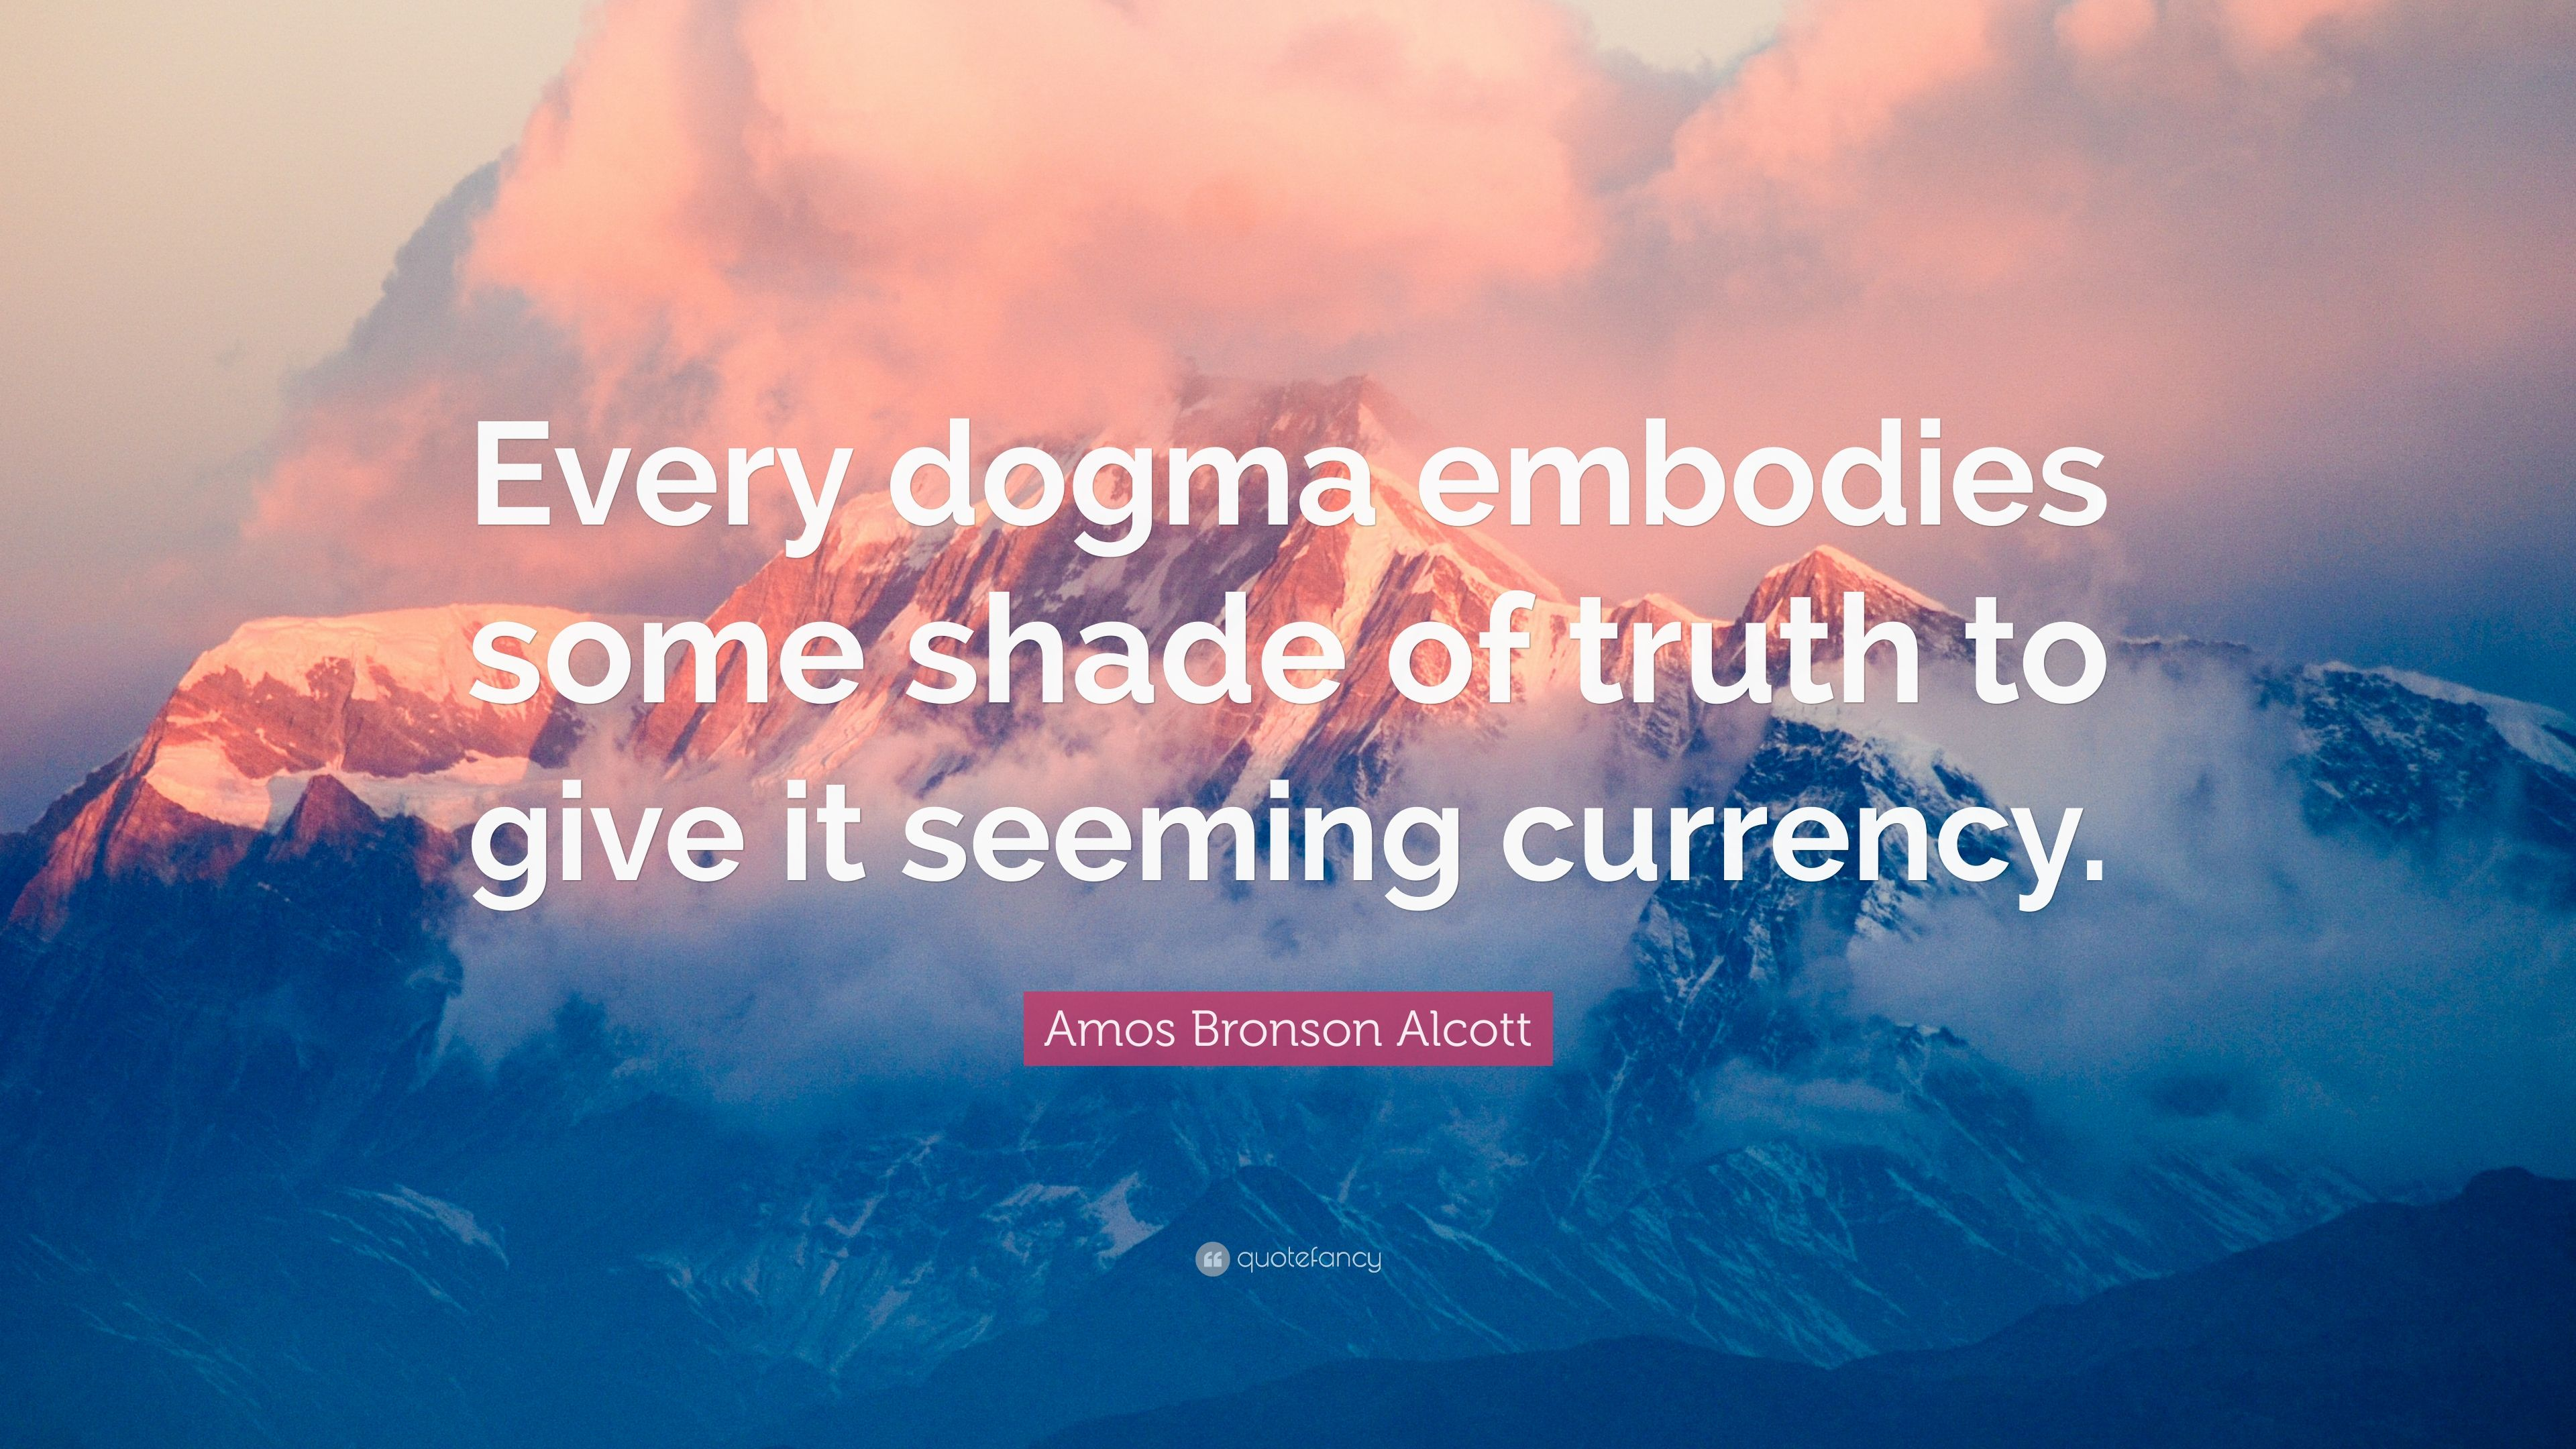 Dogma is the truth